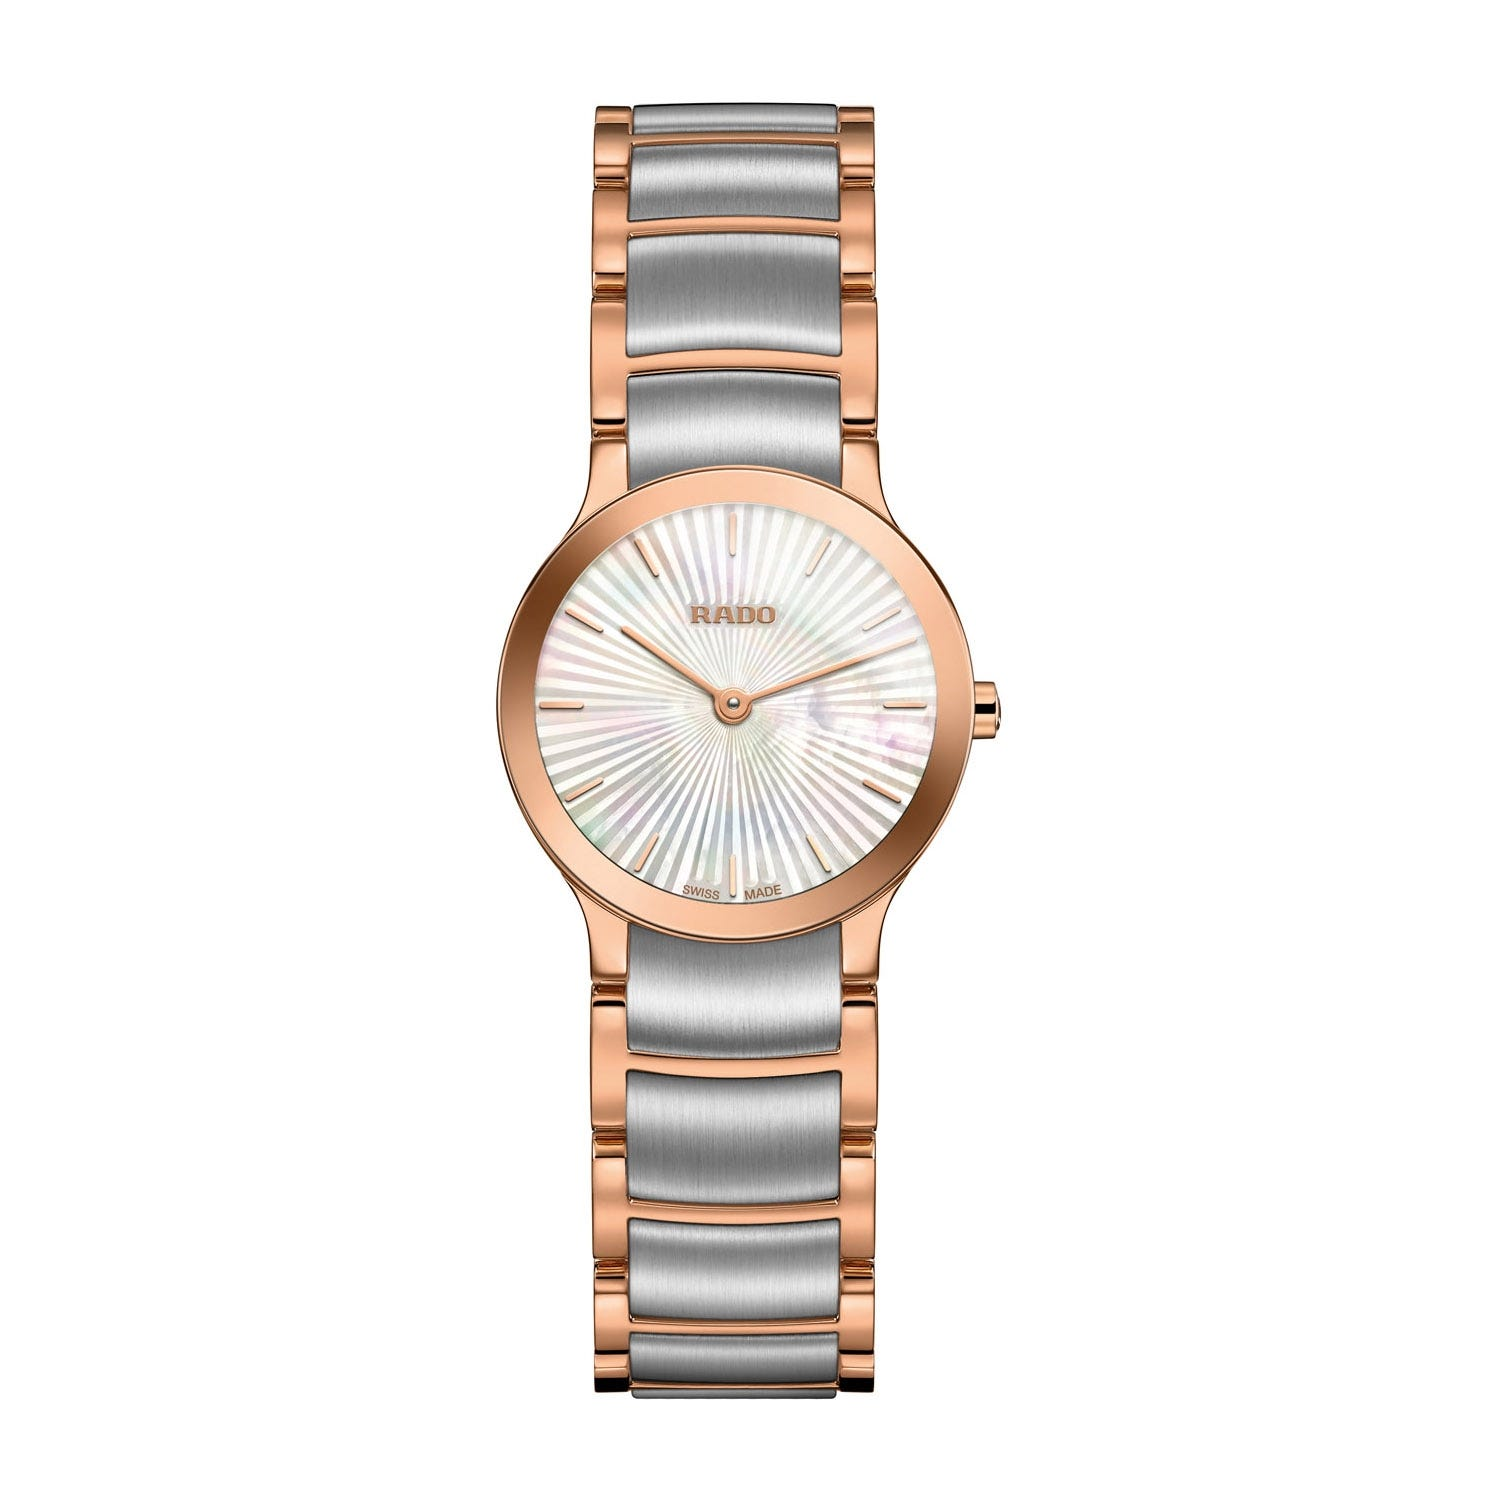 Rado Centrix XS Pearl Dial Two Tone Steel Ladies' Watch